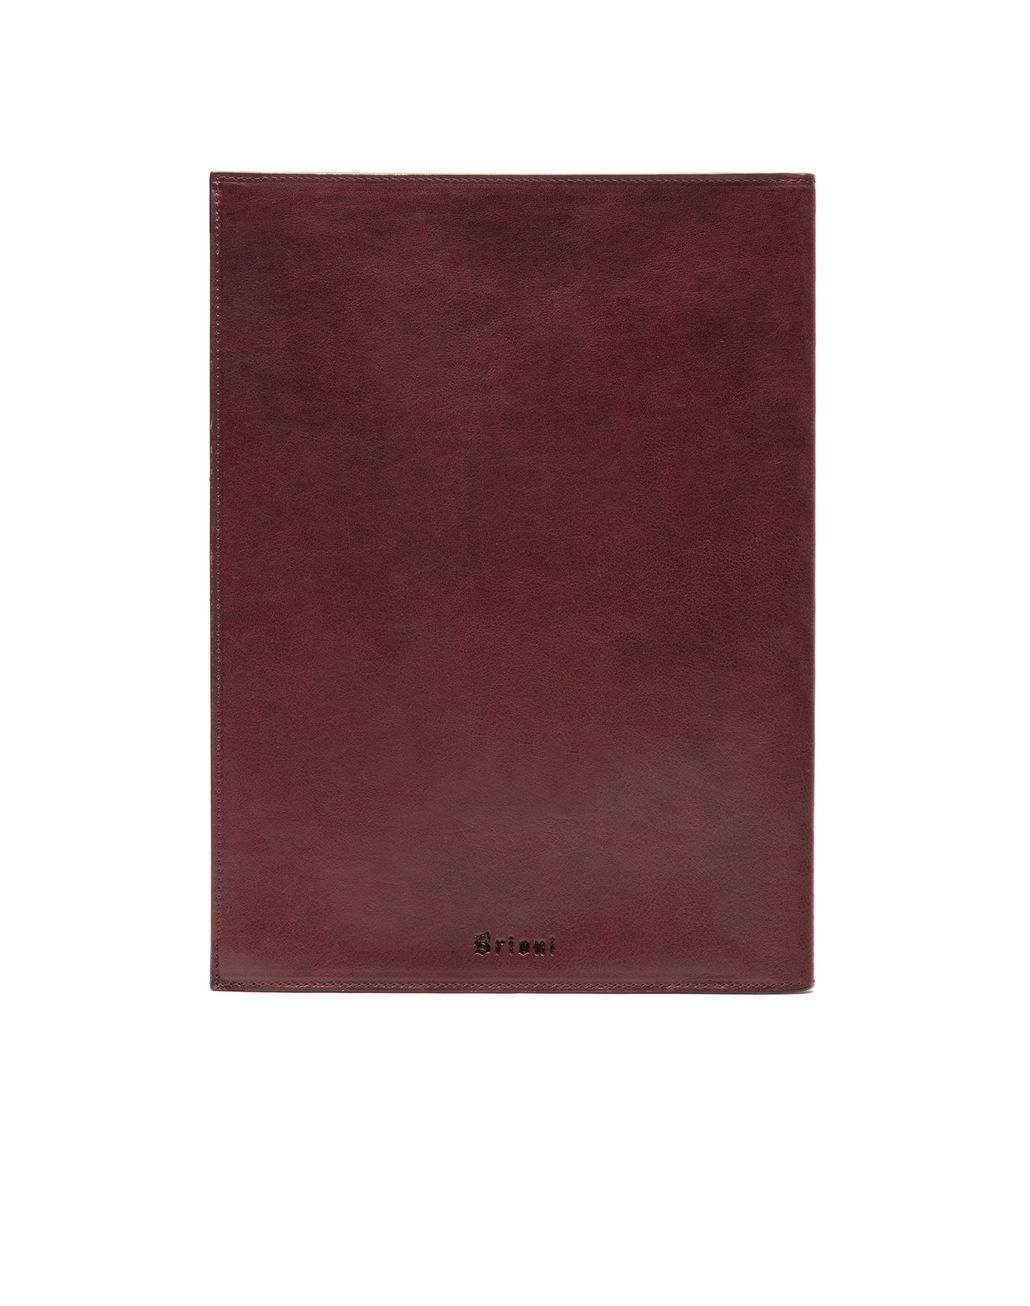 BRIONI Porte-documents zippé bordeaux Article de Maroquinerie U d